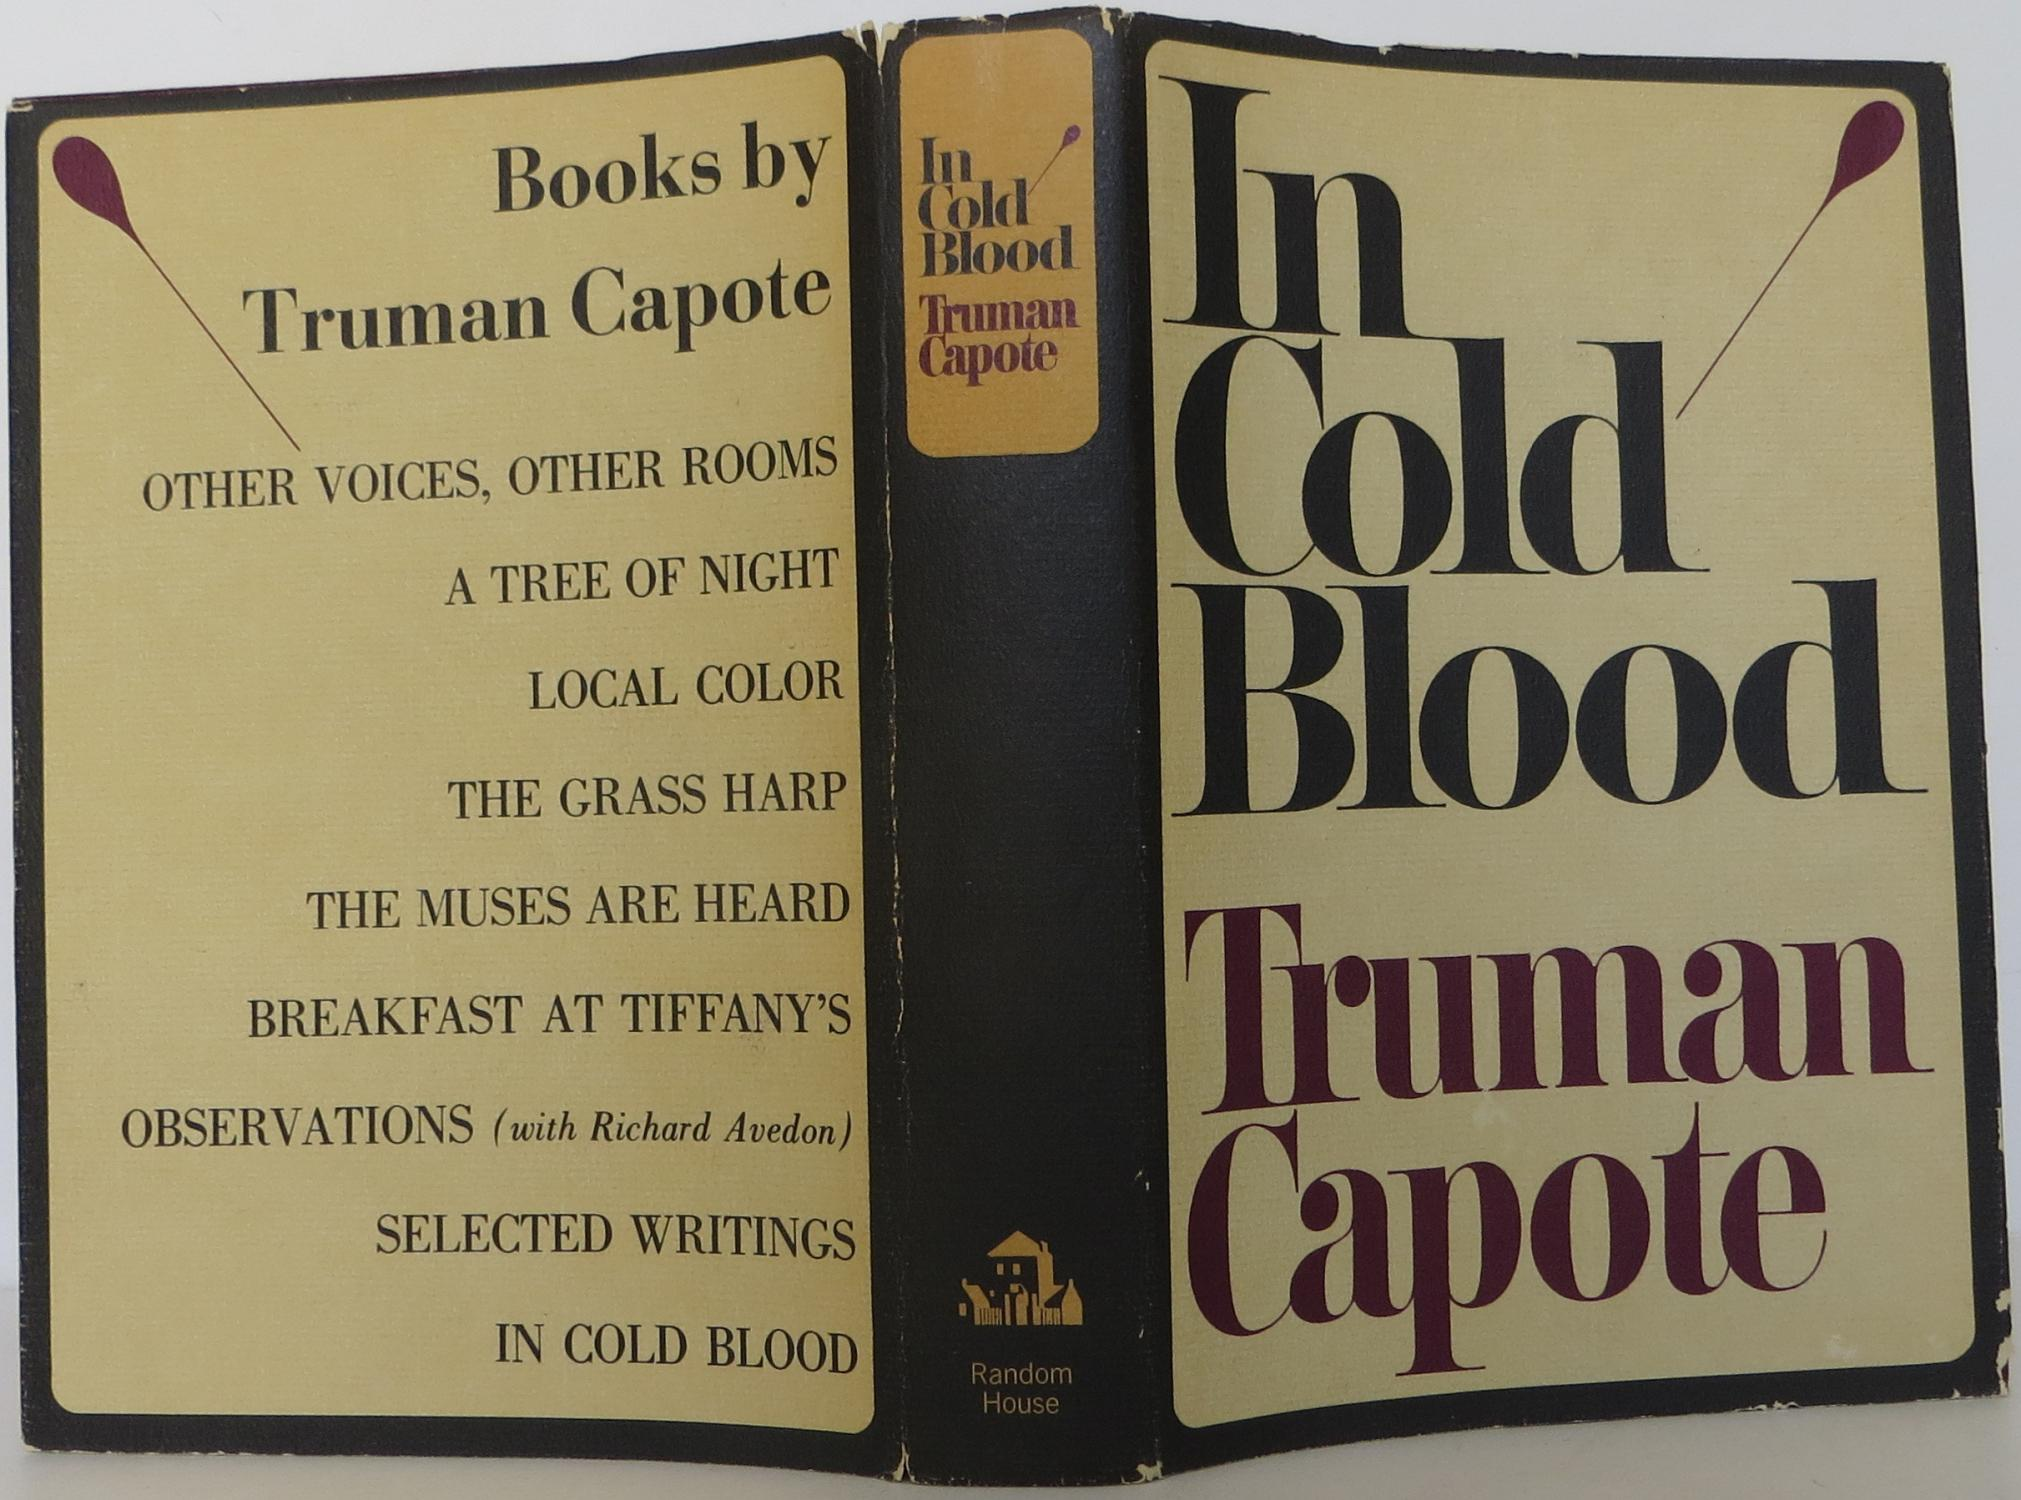 truman capotes in cold blood essay Everything you need to know about the tone of truman capote's in cold blood, written by experts with you in mind.